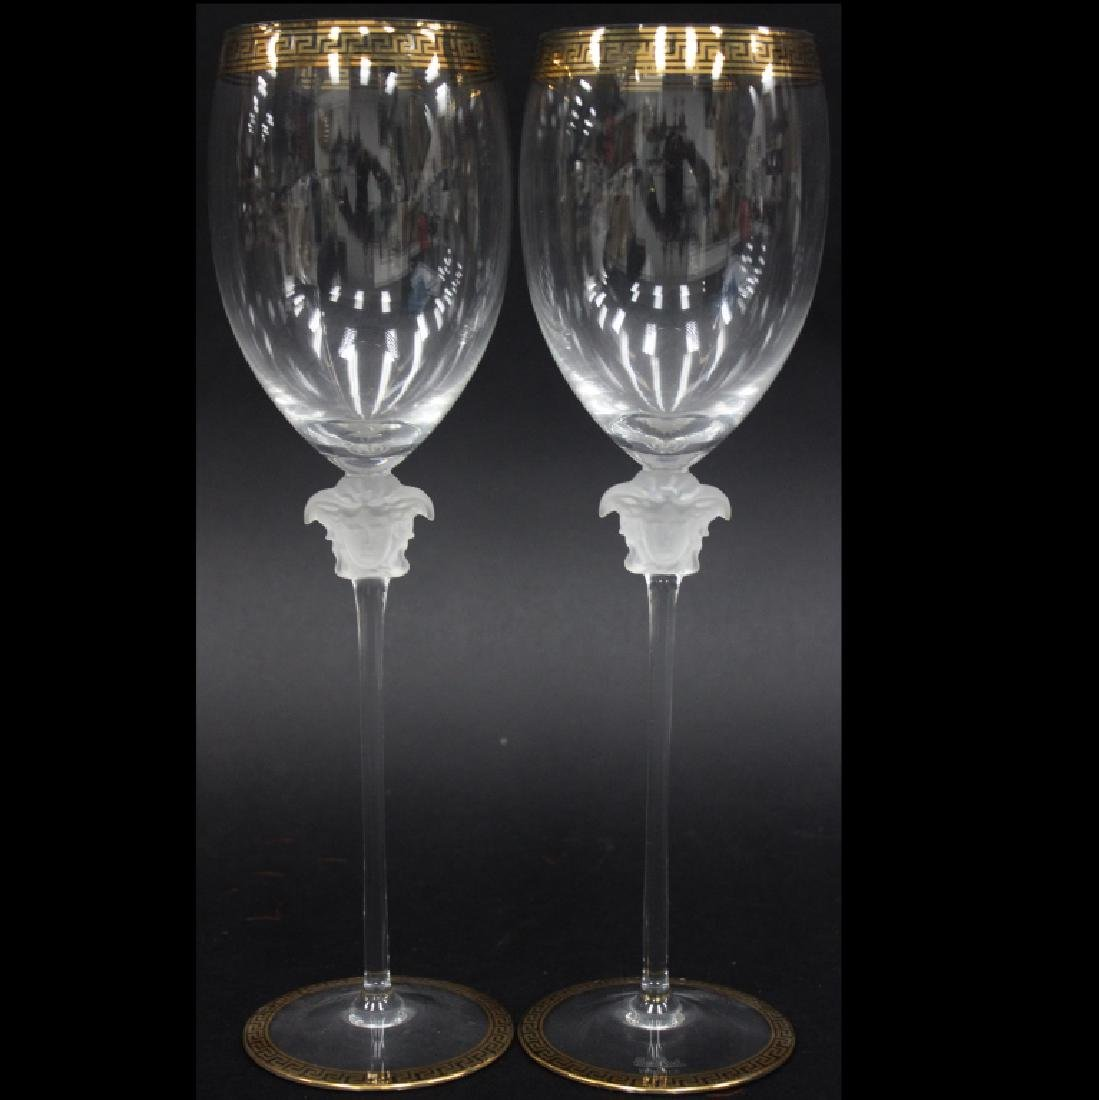 (2) ROSENTHAL VERSACE TALL WINE GLASSES